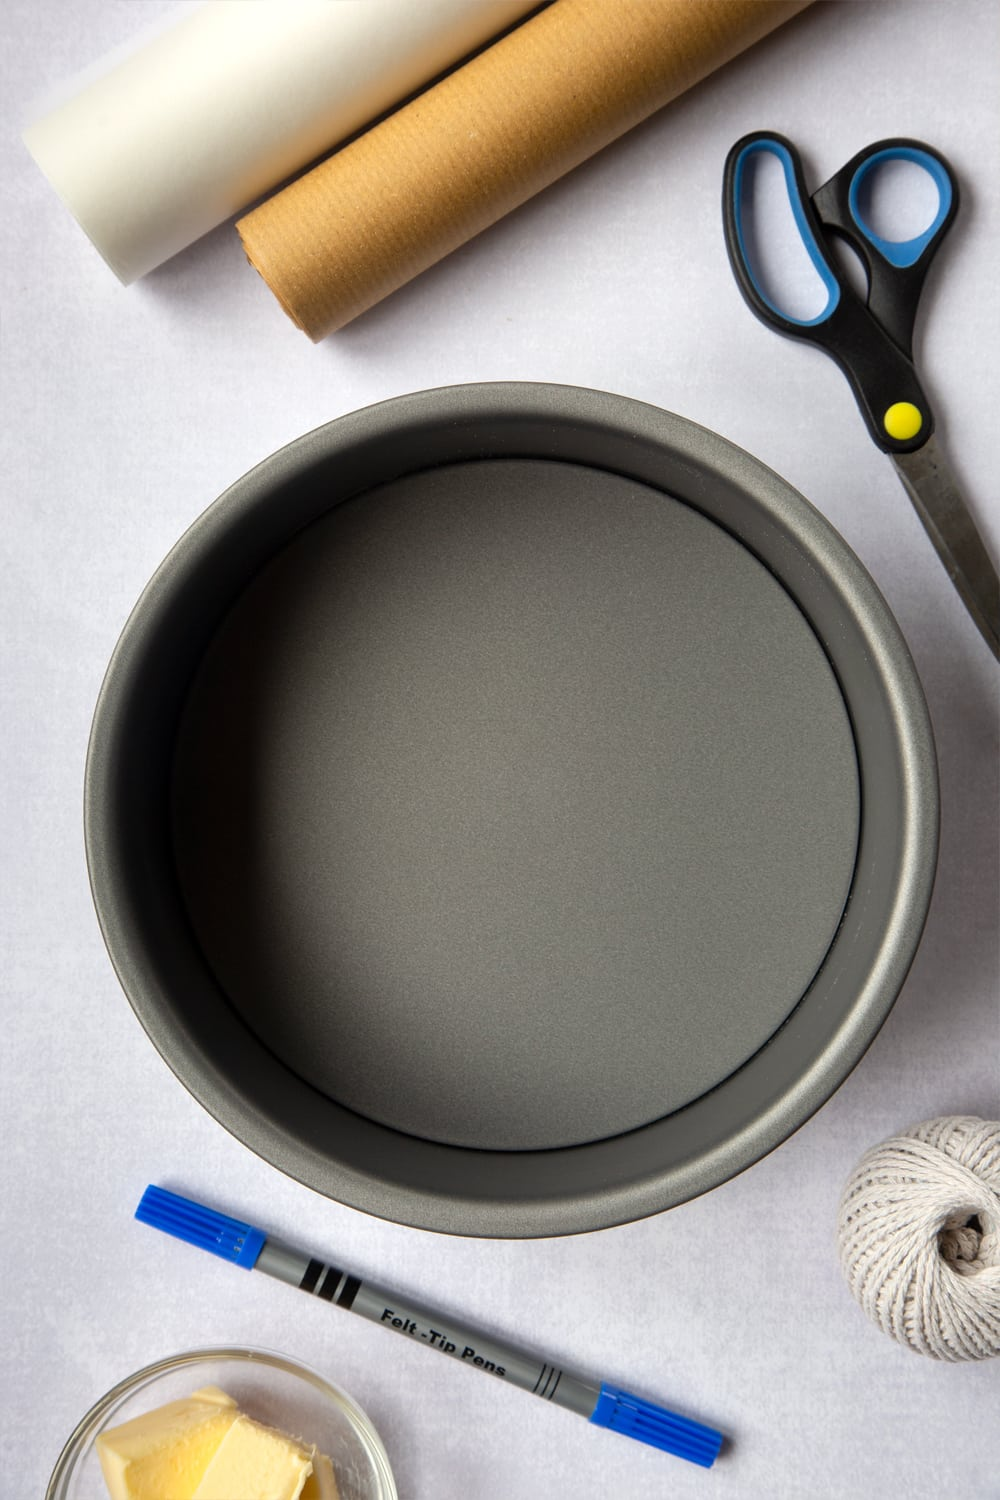 The materials you will need to complete this Idiot's guide to lining a Christmas cake tin. Baking paper, Brown paper, String (non-plastic) A medium loose-bottomed cake tin, Butter (to grease), Scissors, Pen / pencil